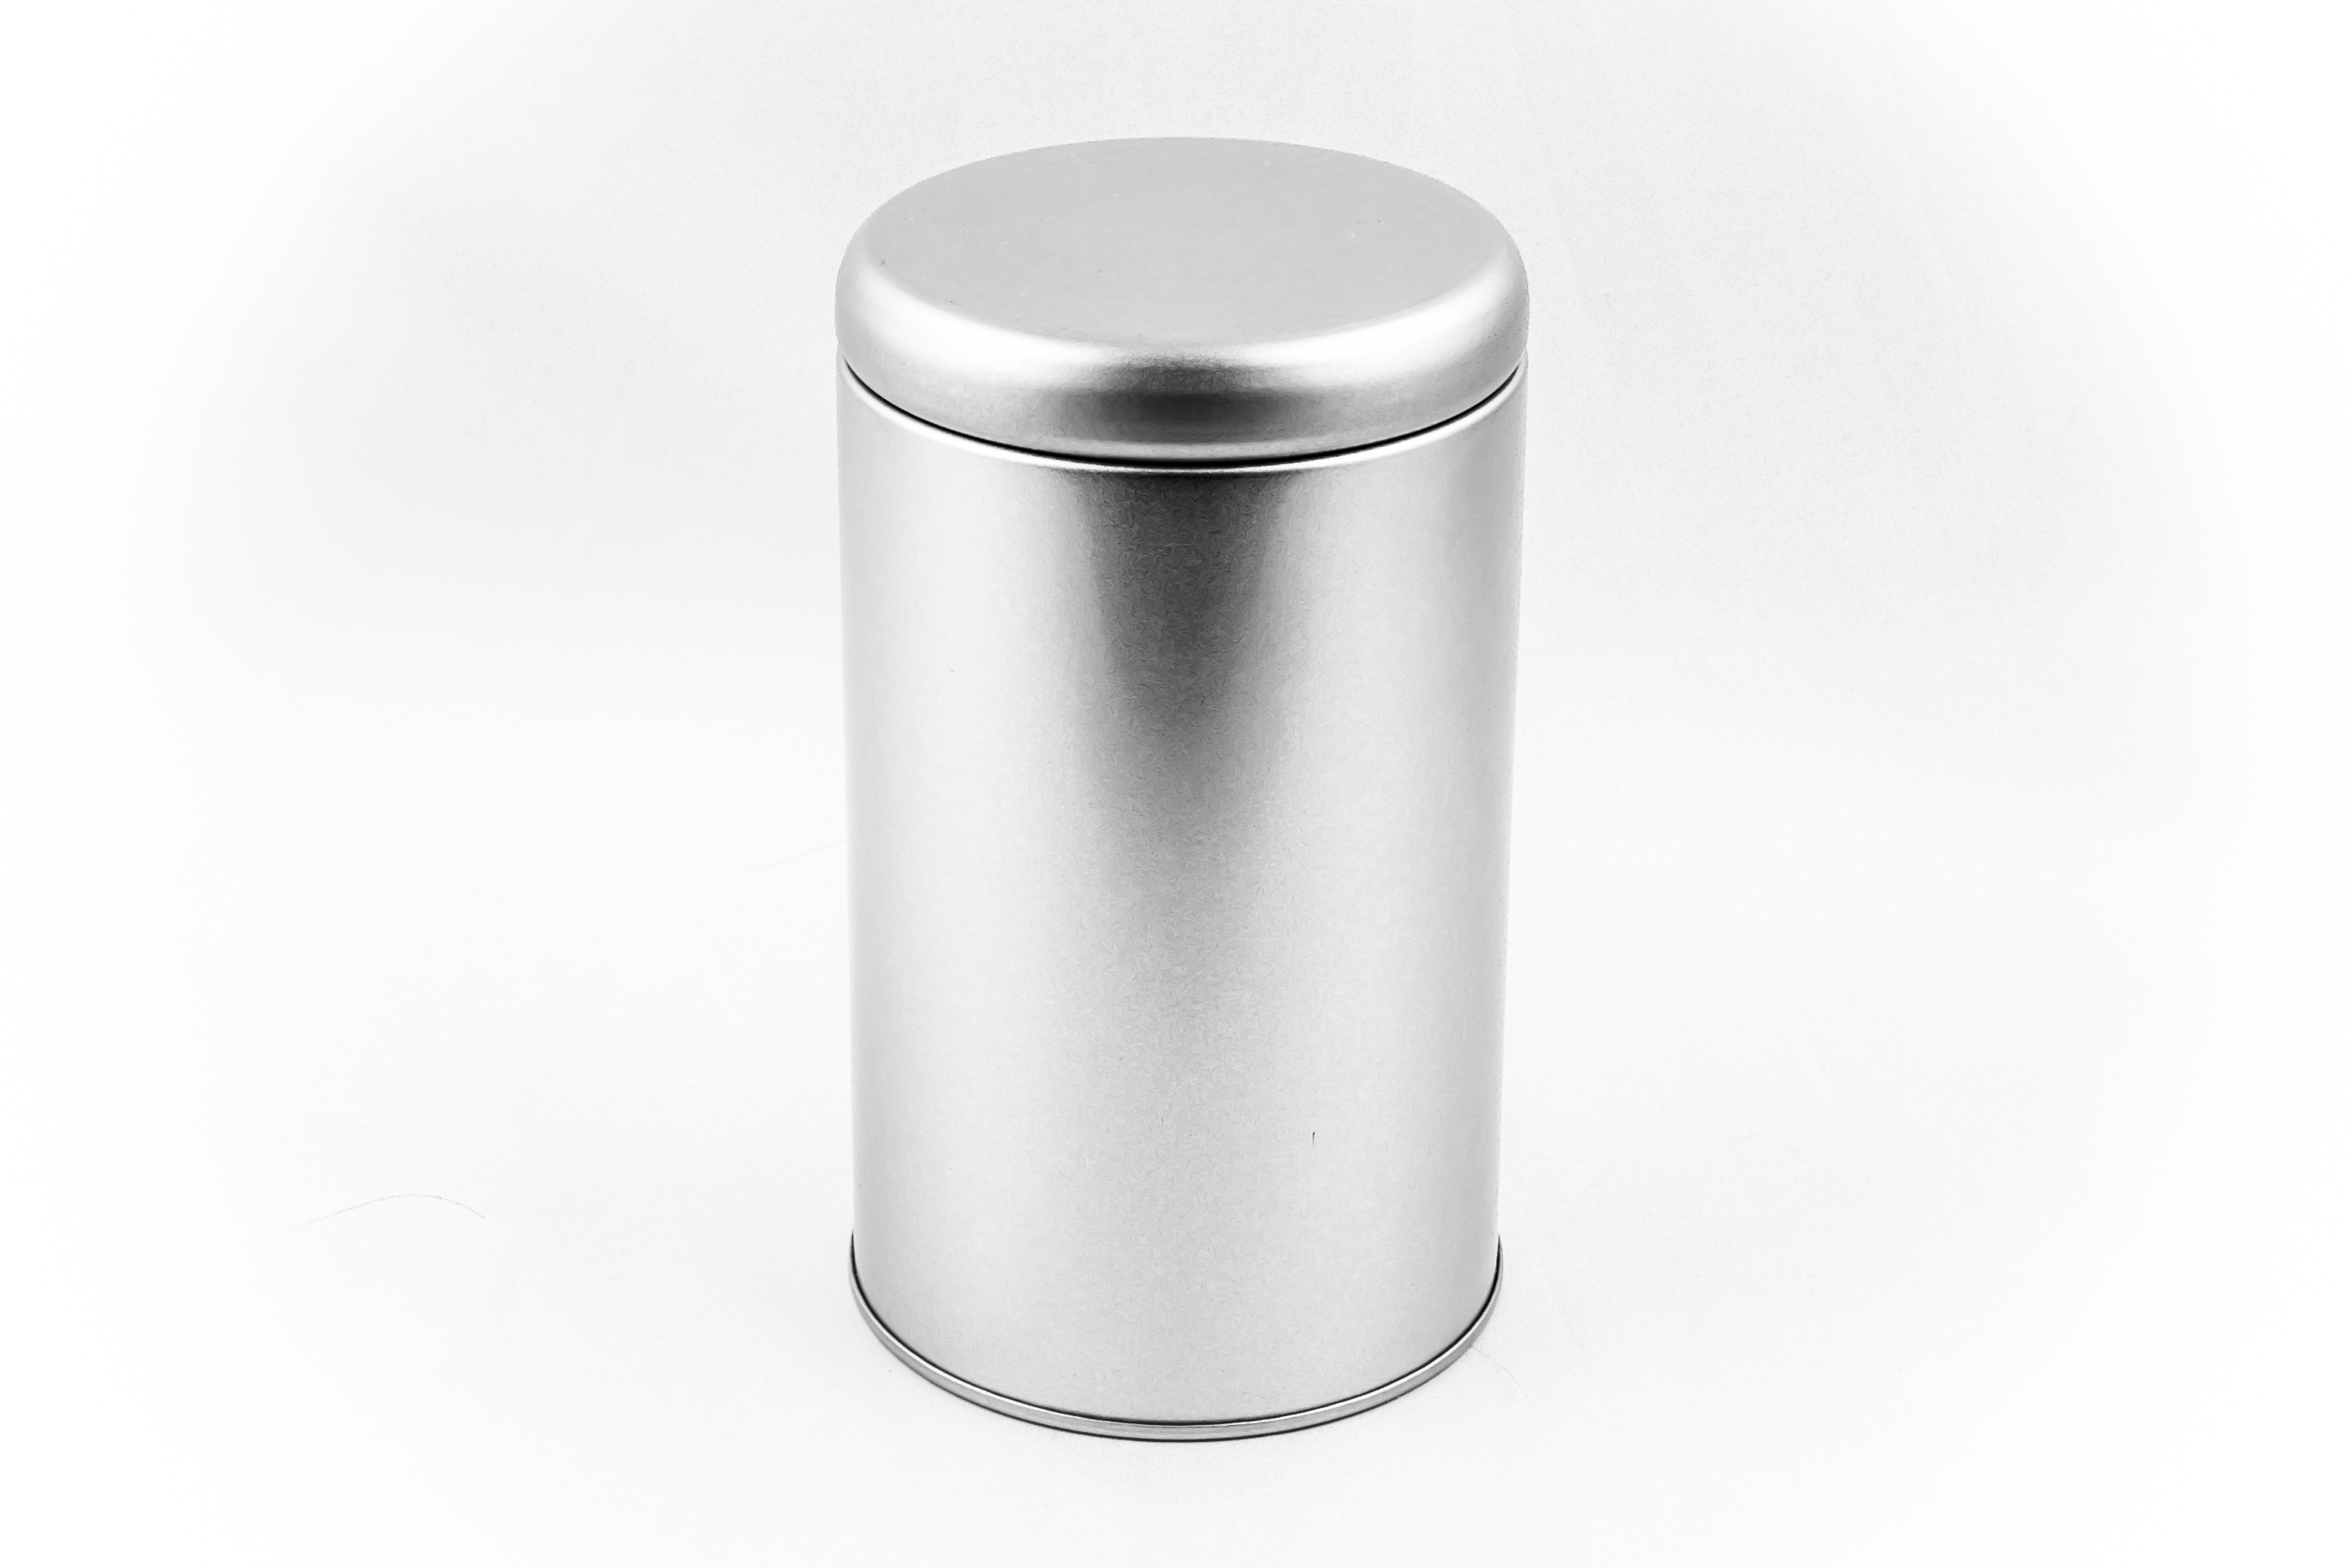 Small round storage tinbox